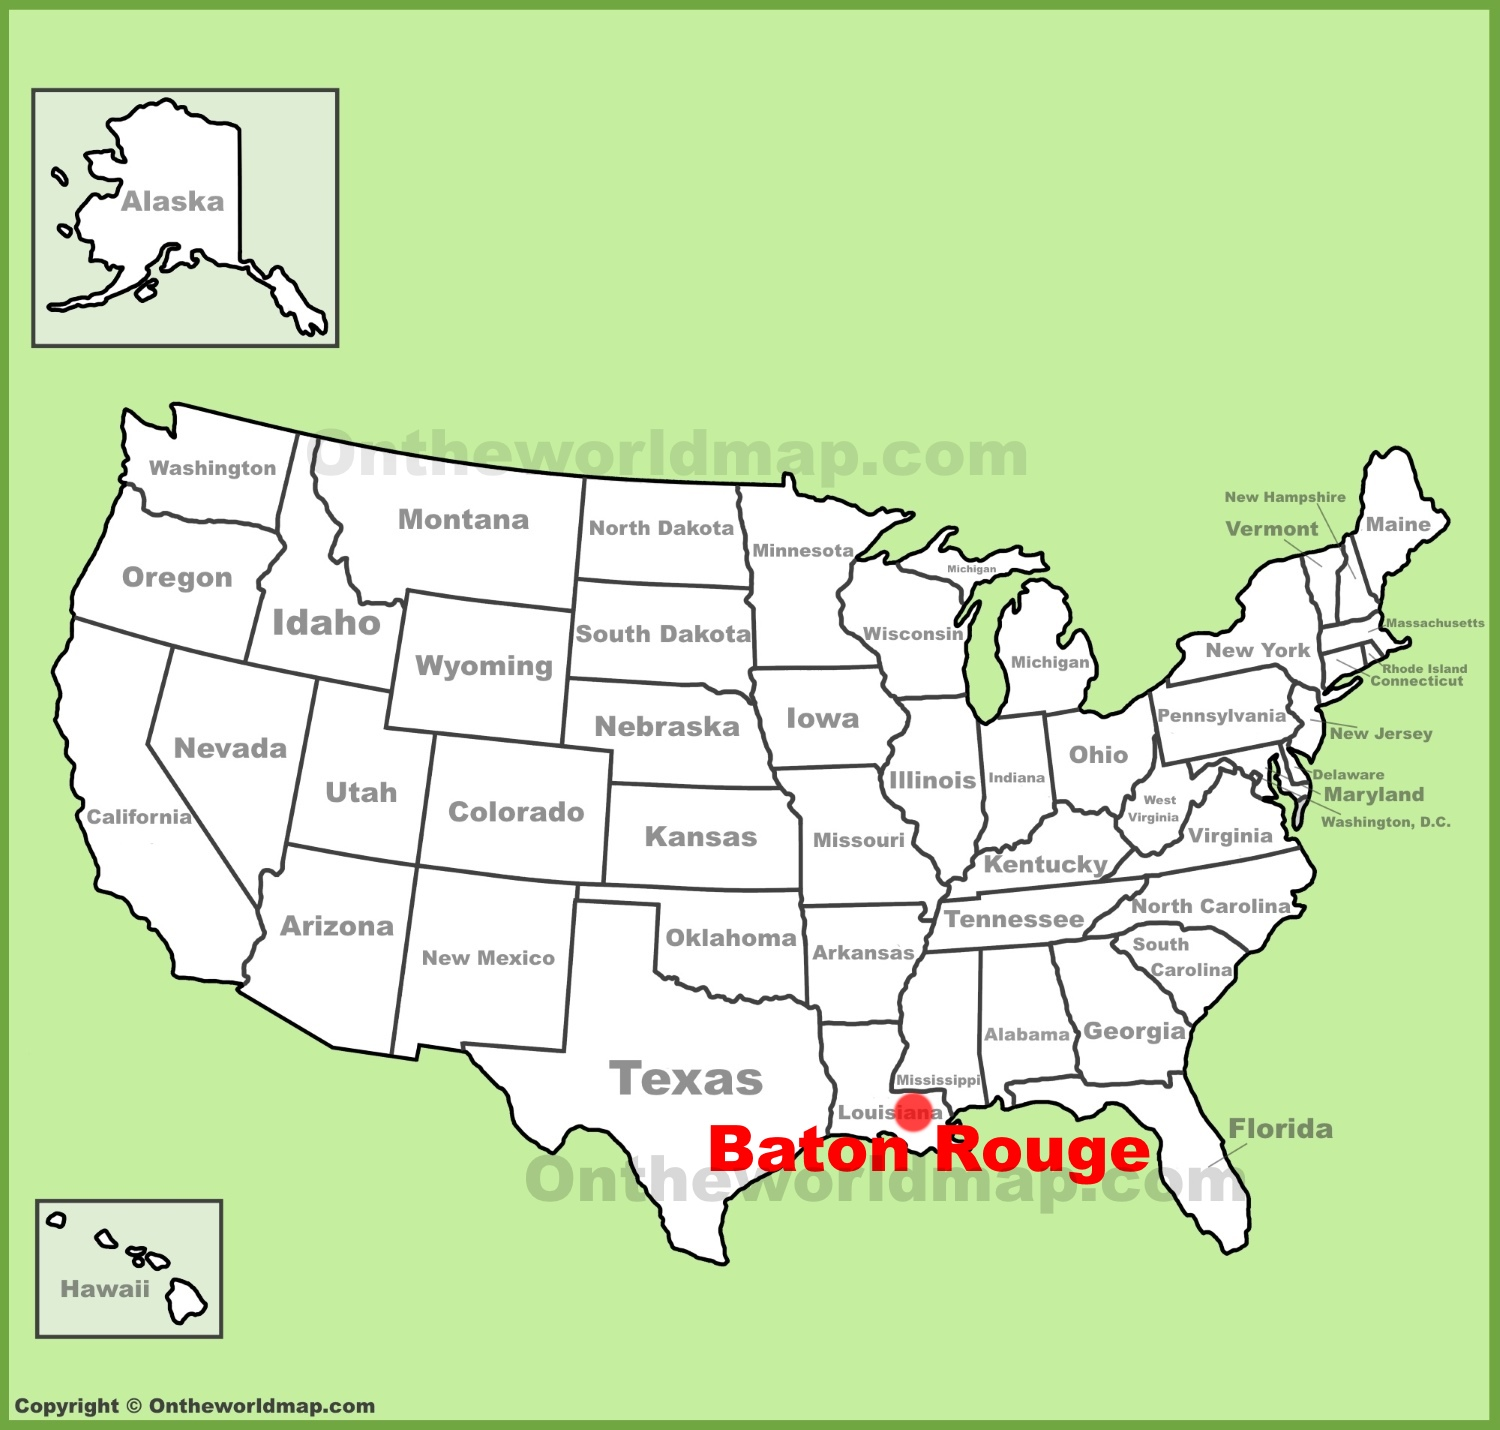 baton rouge location on the u s map